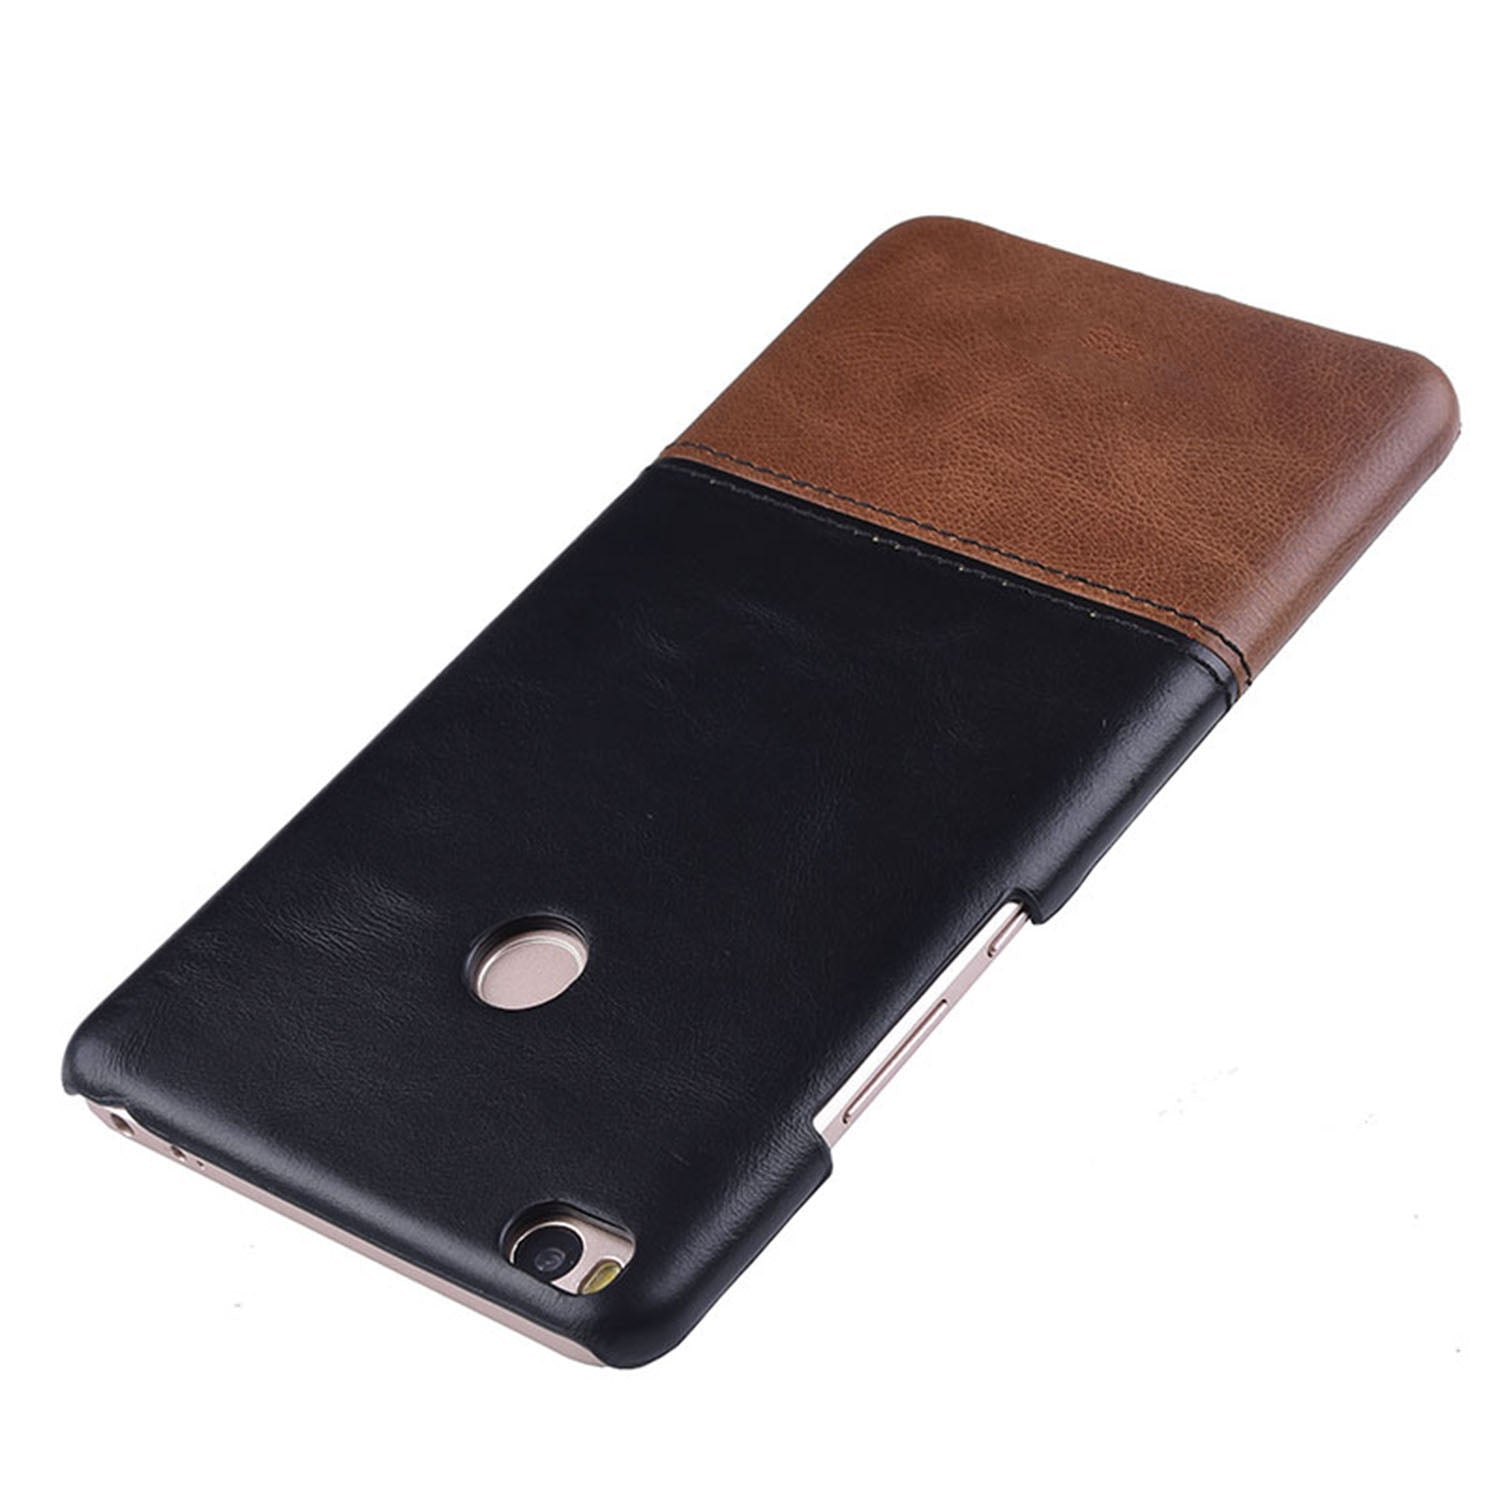 Genuine Leather Dual Color Hand Stitched Premium Protective Case Cover for Xiaomi Mi Max 2 - Black , Brown - Mobizang